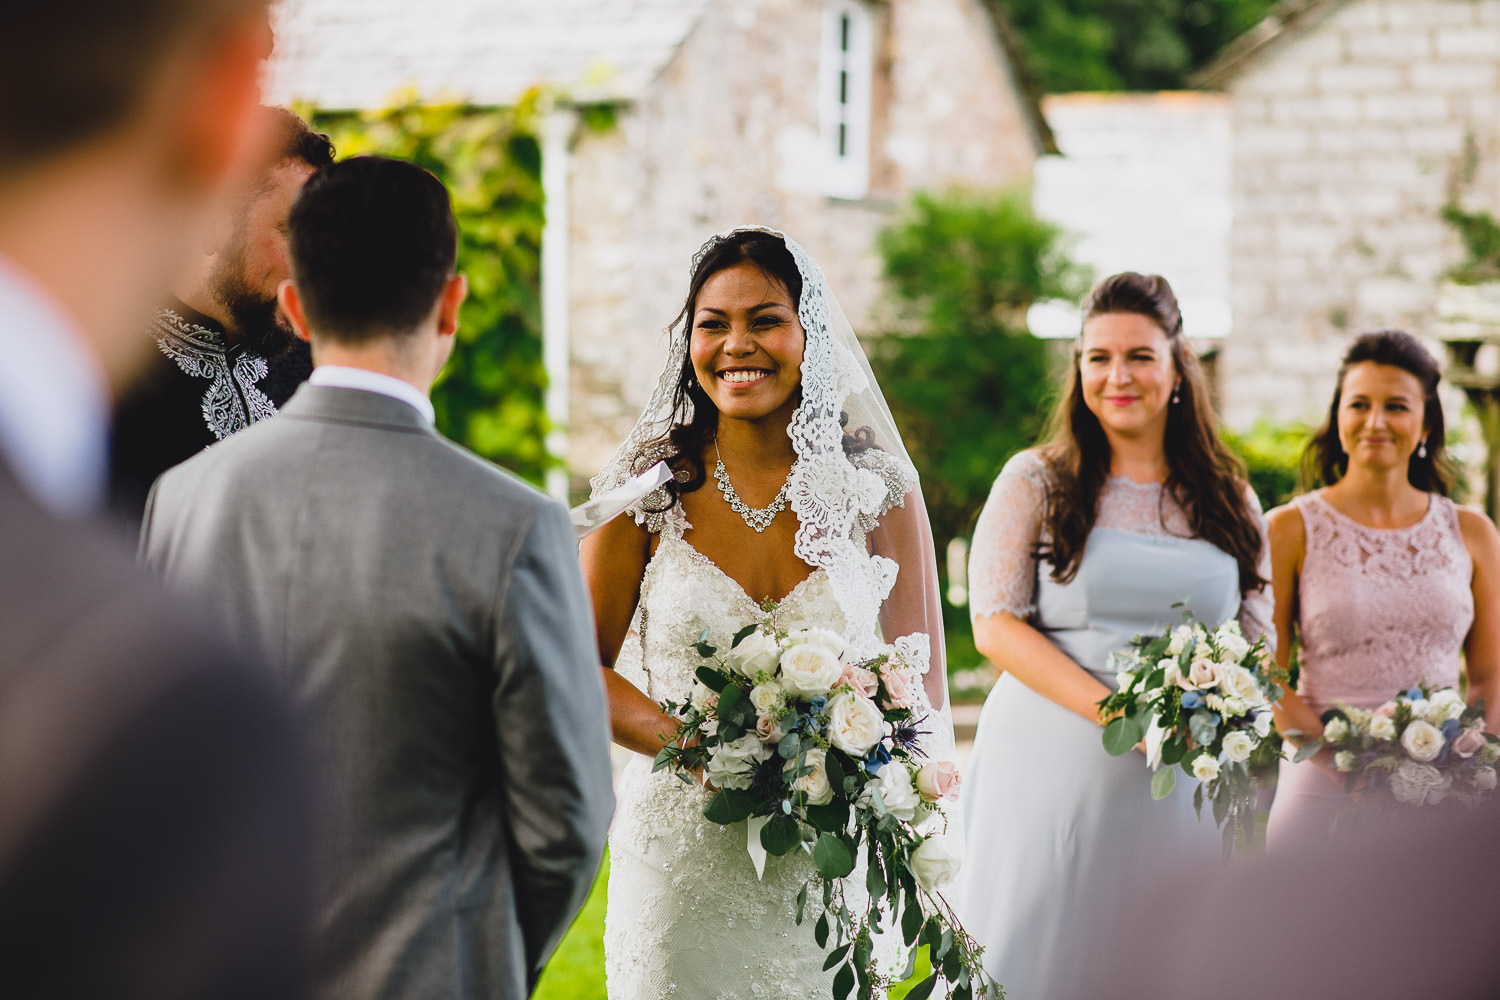 outdoor wedding ceremony in cornwall